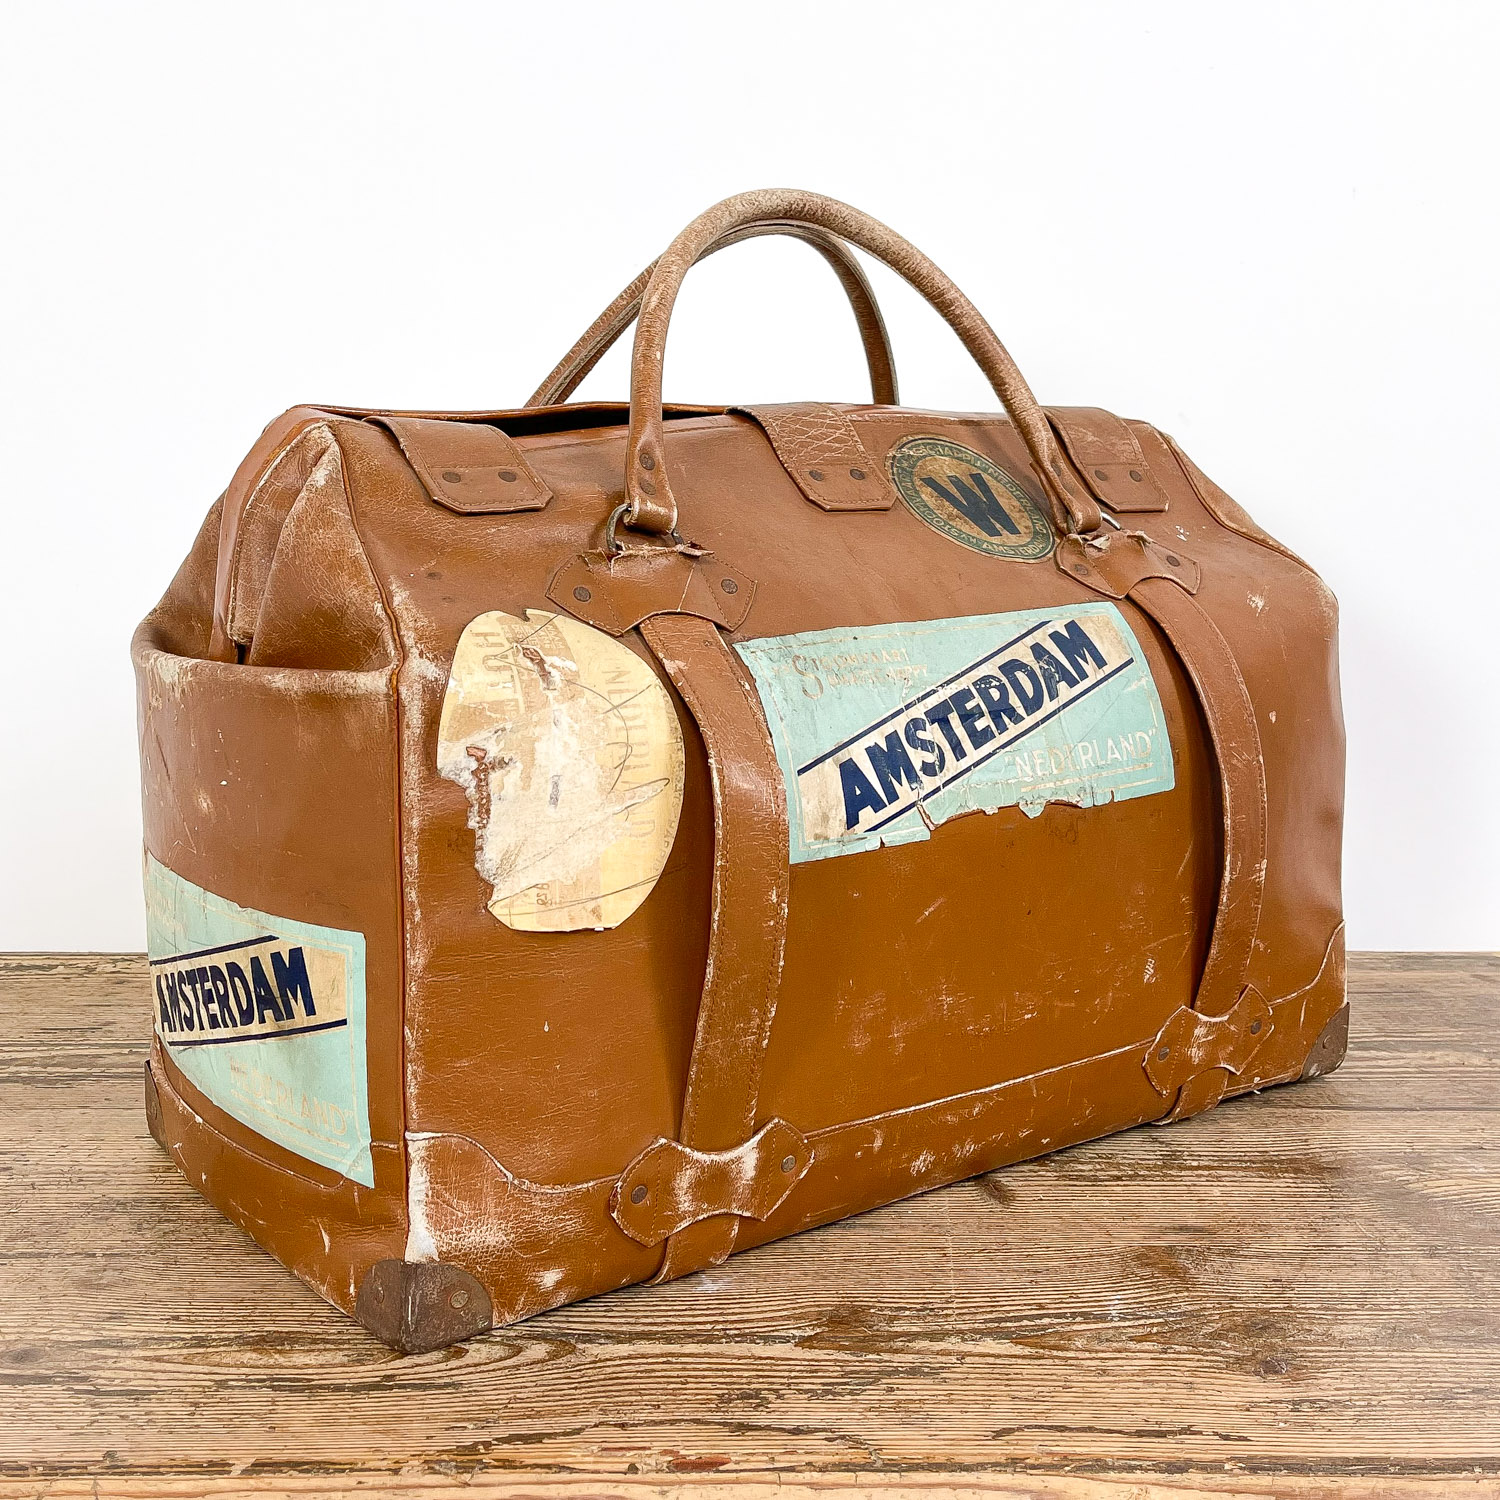 Vintage leather travel bag with Amsterdam stickers